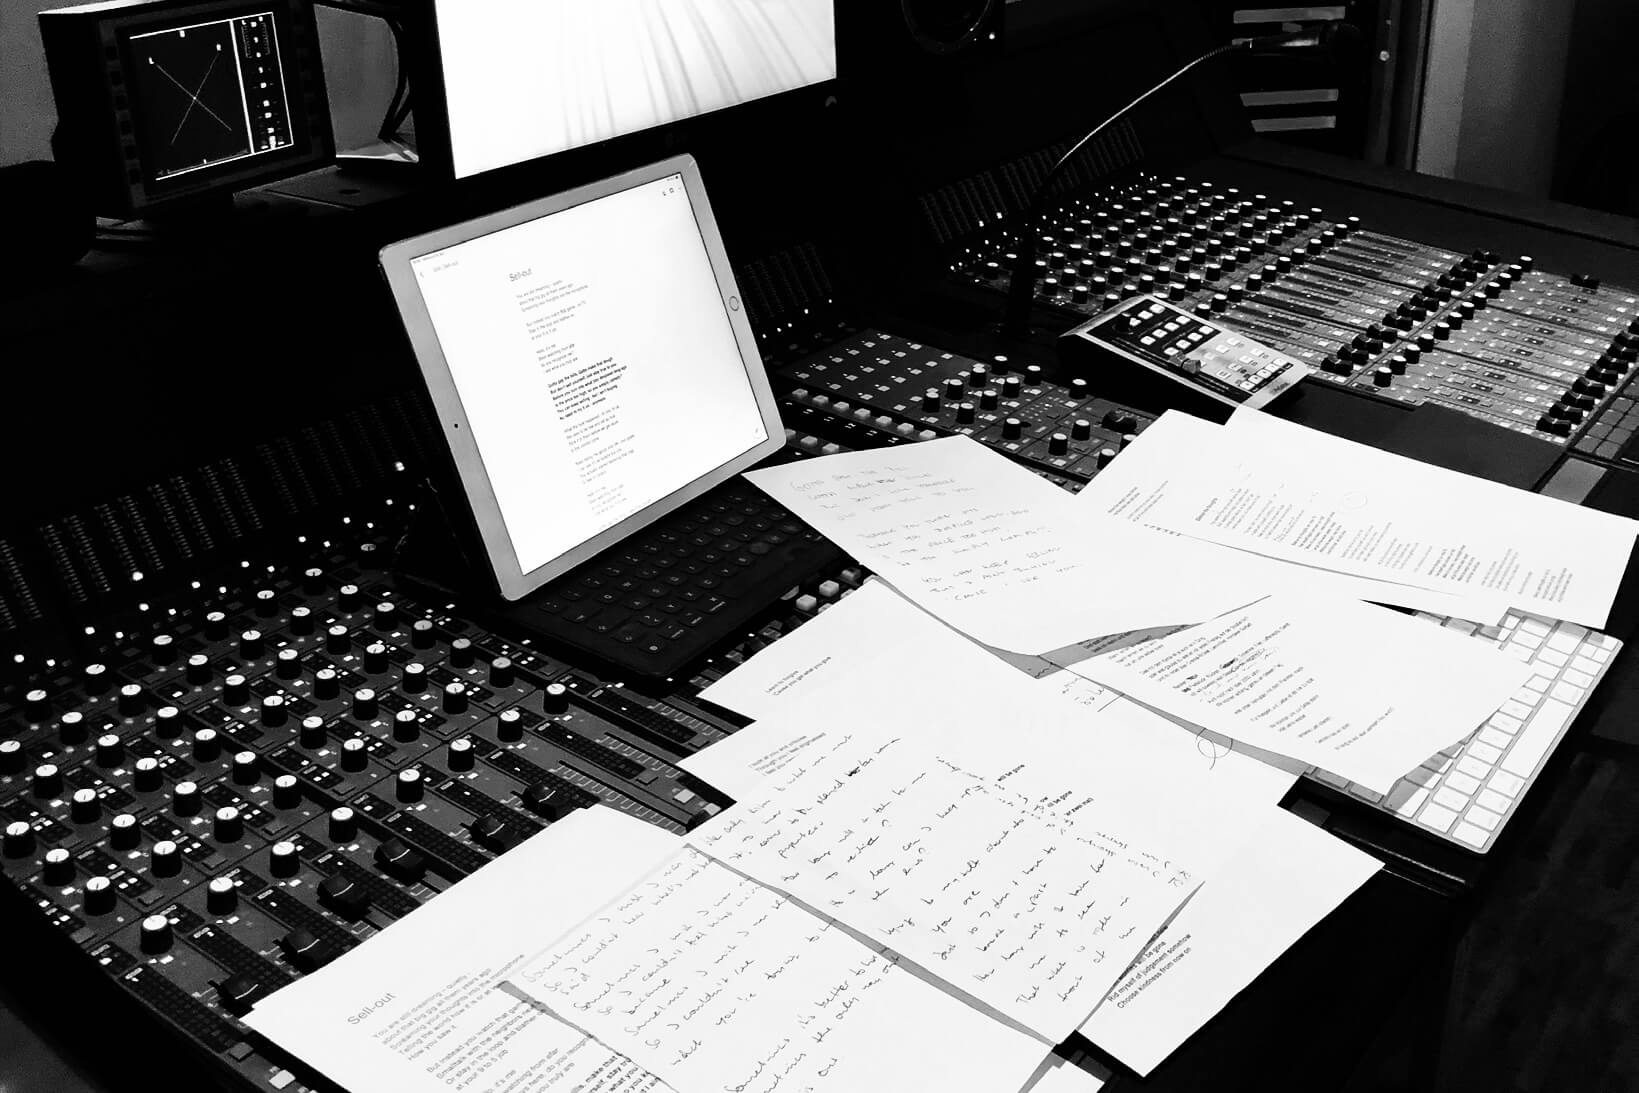 Organize creatively? - Tools for more productivity in songwriting